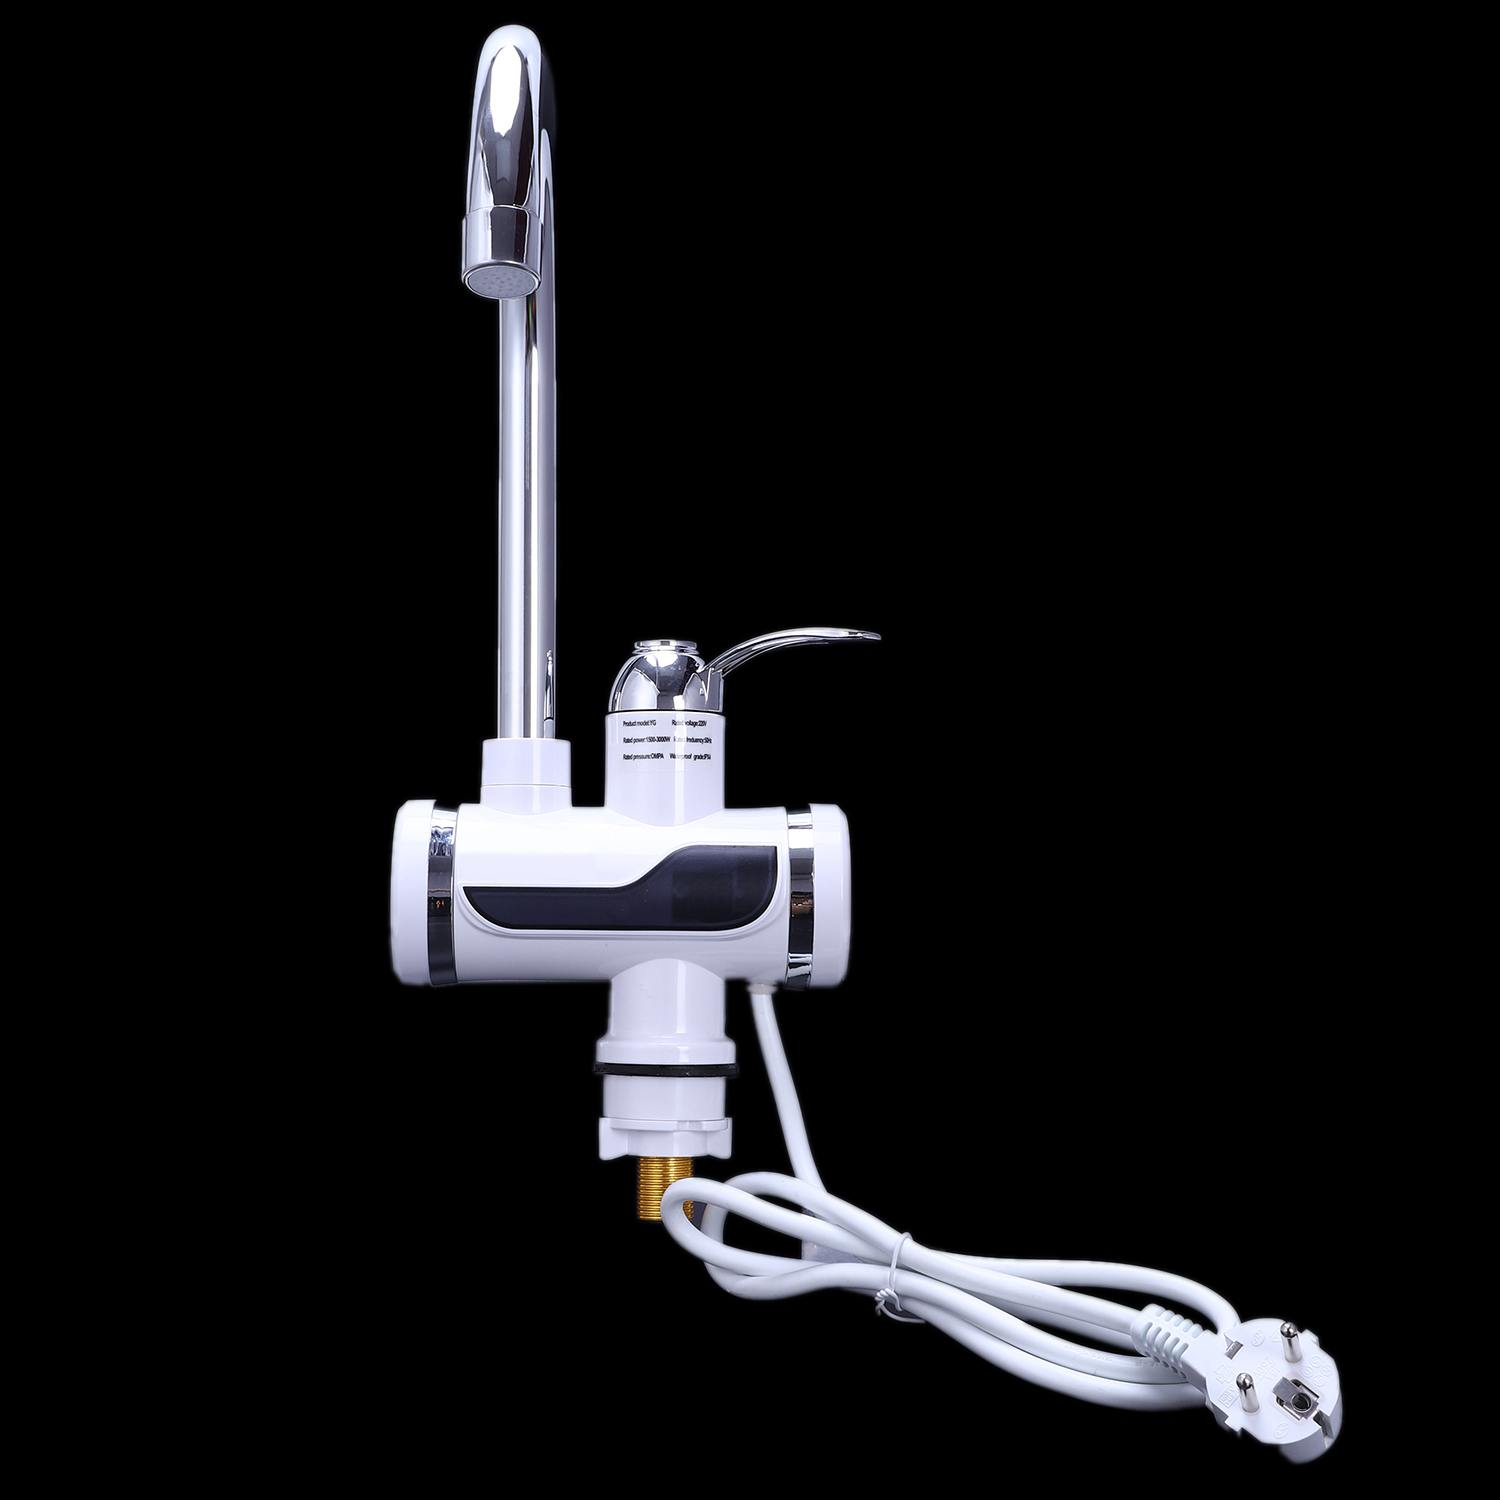 Image 5 - Hot Sale Eu Plug Electric Kitchen Water Heater Tap Instant Hot Water Faucet Heater Cold Heating Faucet Tankless Instantaneous-in Kitchen Faucets from Home Improvement